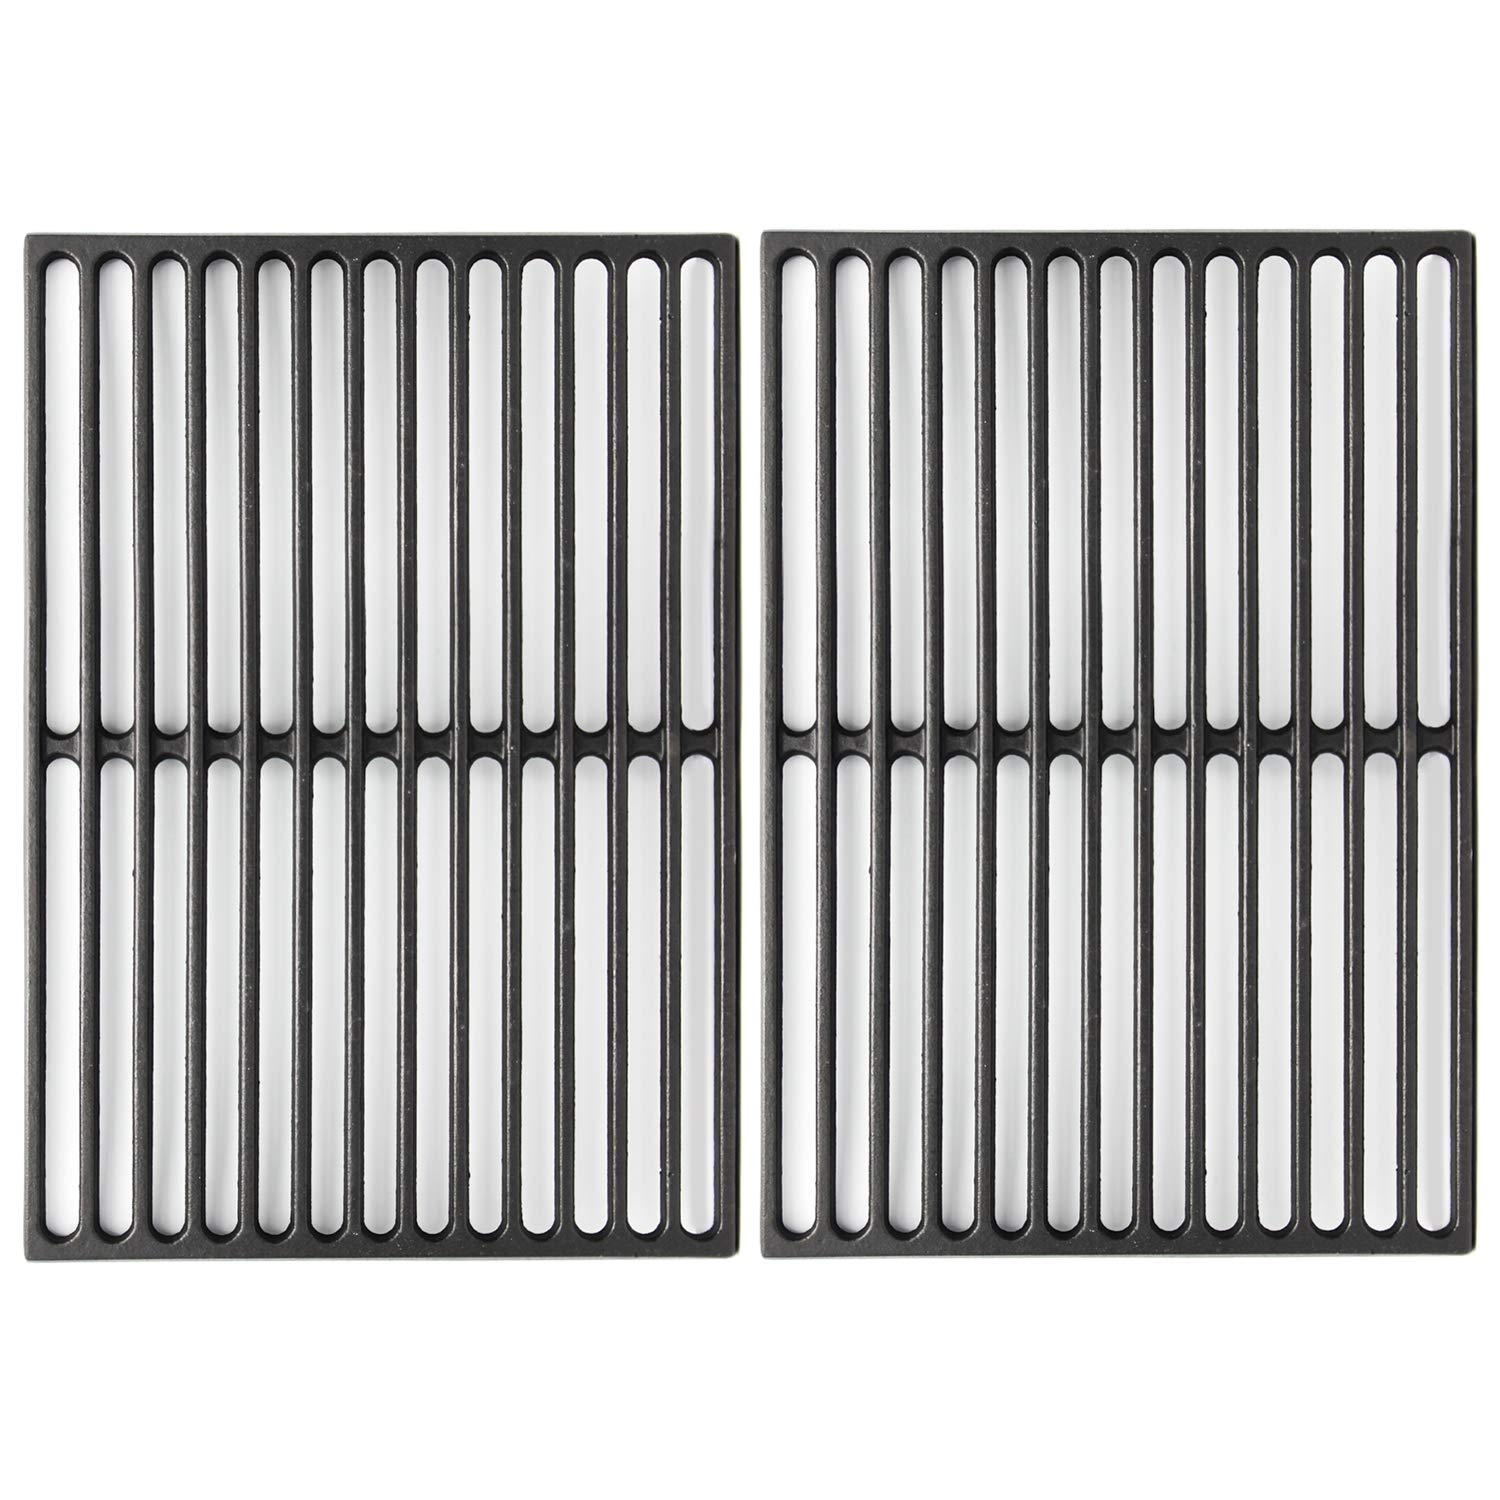 Vicool 7526 Cast Iron Grill Grates Cooking Grid For Weber Spirit 300 700 Series Genesis Silver B C Genesis Gold B C I Iv 1000 5000 Grill 17 1 4 Set Of 2 Hyg752f